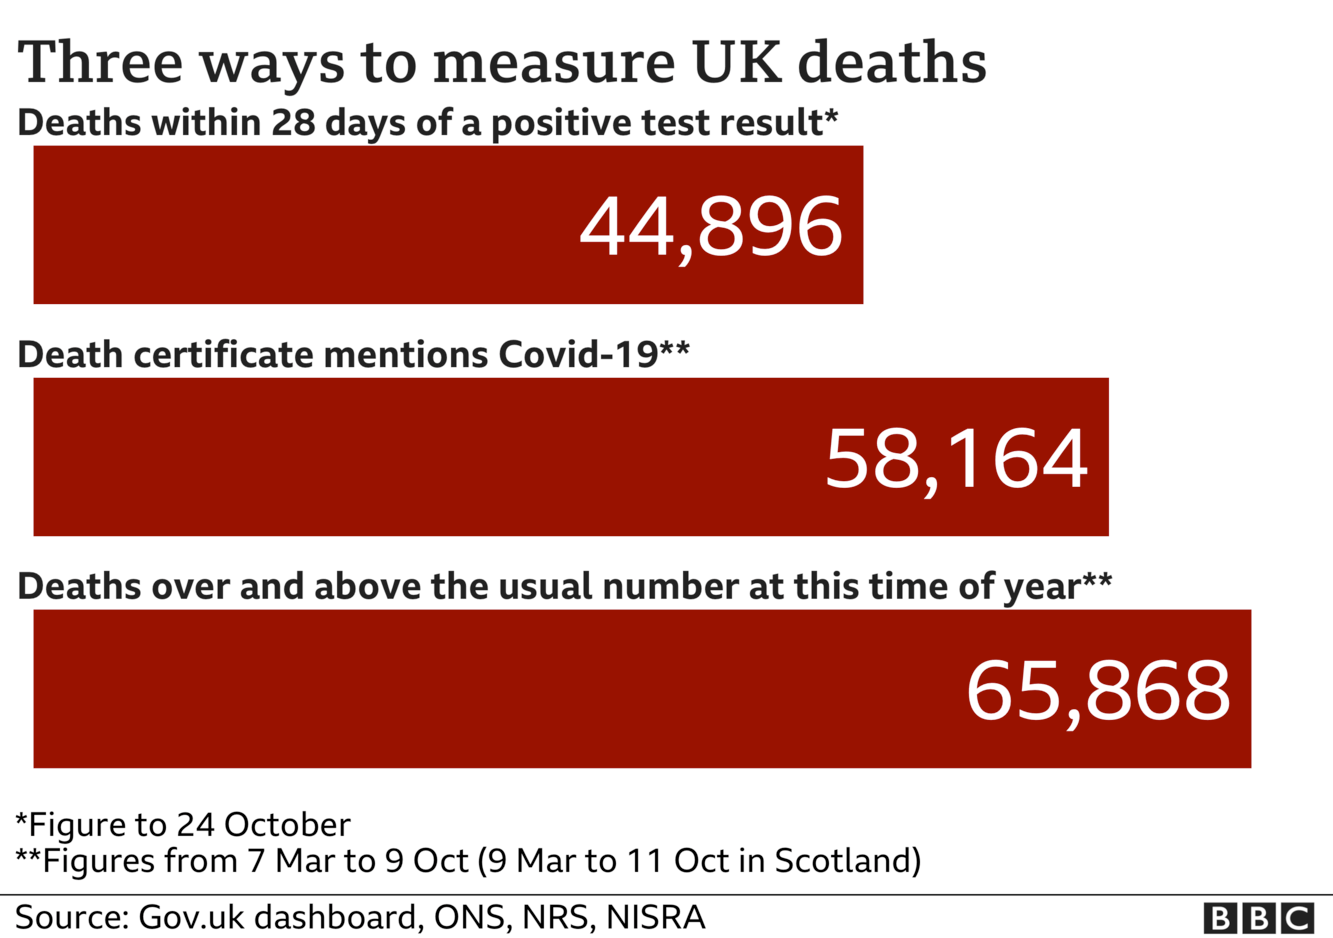 Chart shows three different ways to measures UK deaths - total is 44,896 according to government stats, ONS total of 58,164 includes everyone where coronavirus was mentioned on the death certificate and the excess deaths figures is 65,868